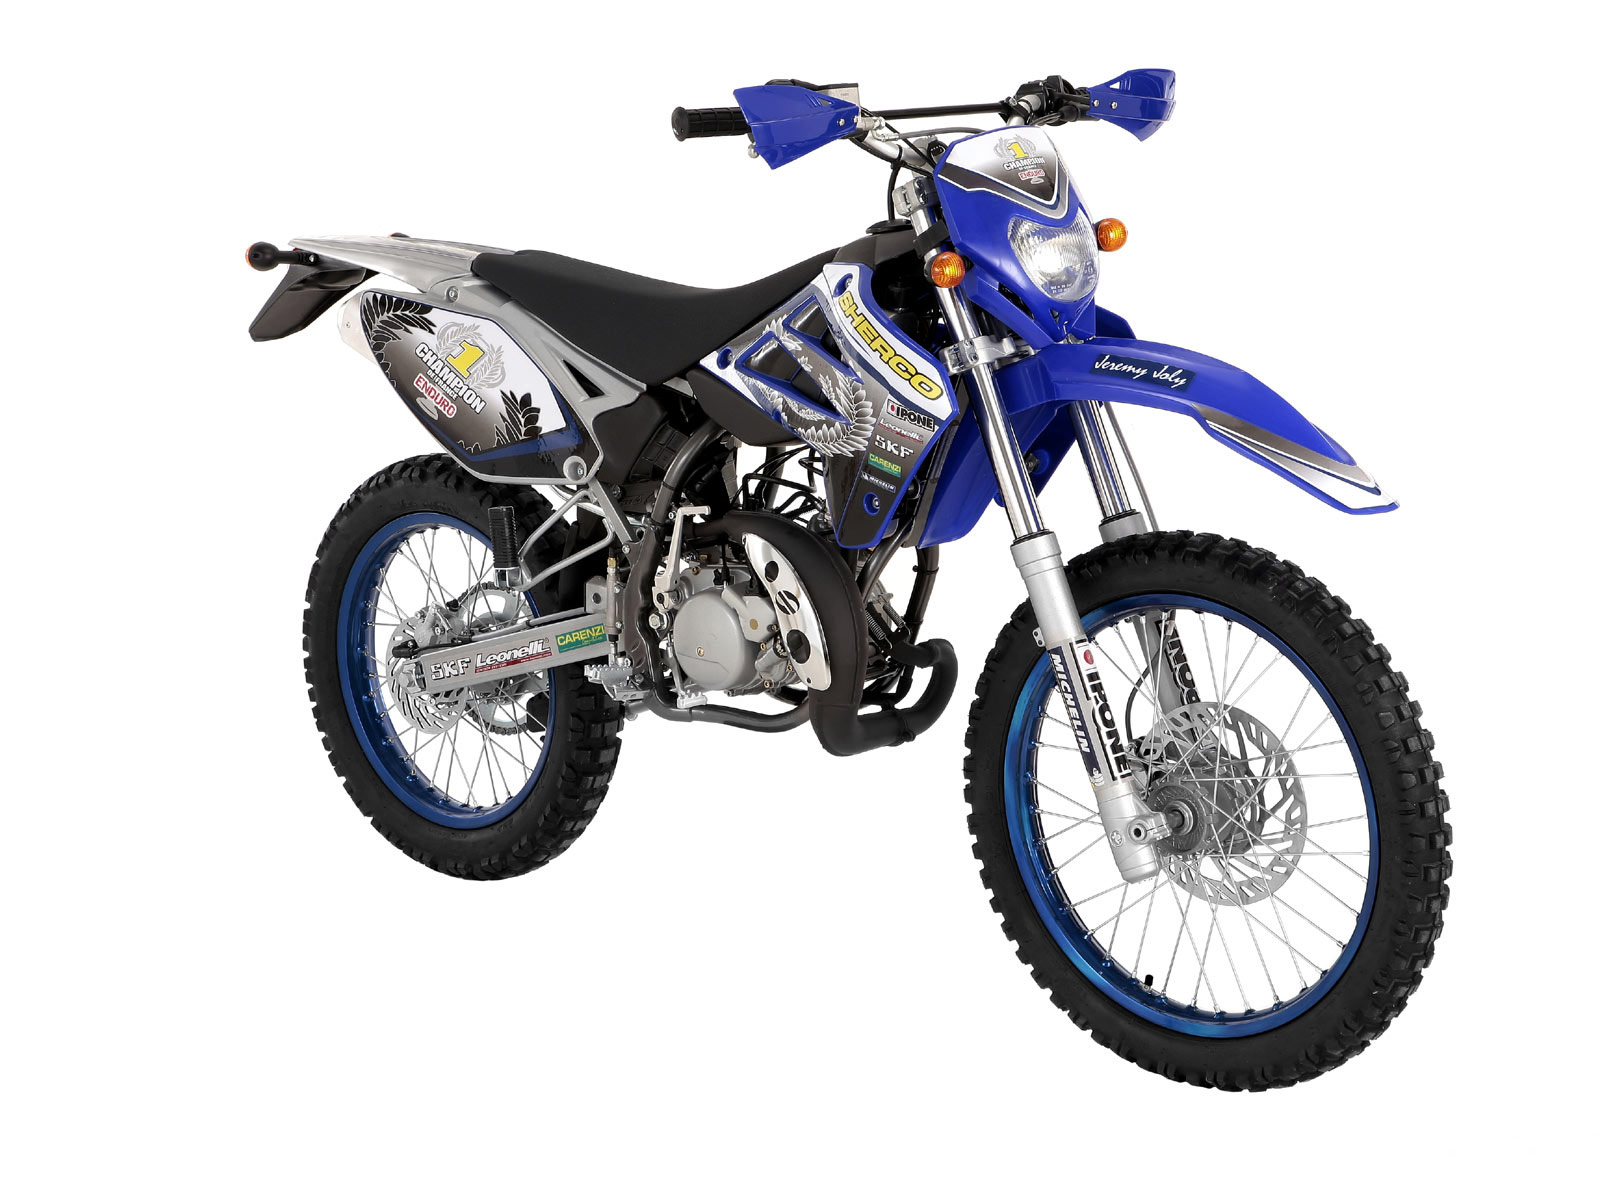 Highland 950 V2 Outback Supermoto 2005 images #97061